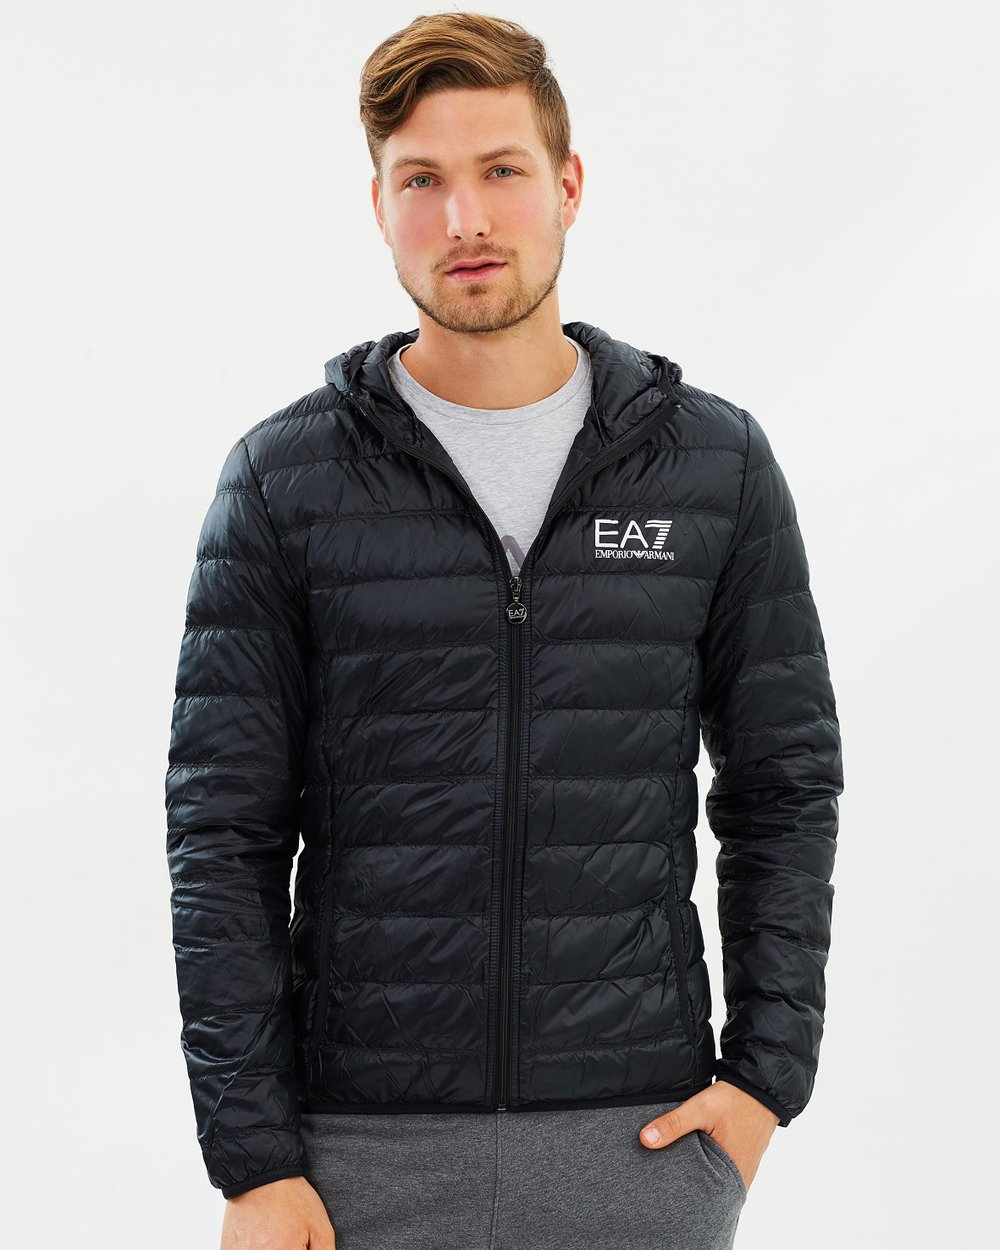 85c3baa78e45 Train Core ID Light Down Jacket by Emporio Armani EA7 Online